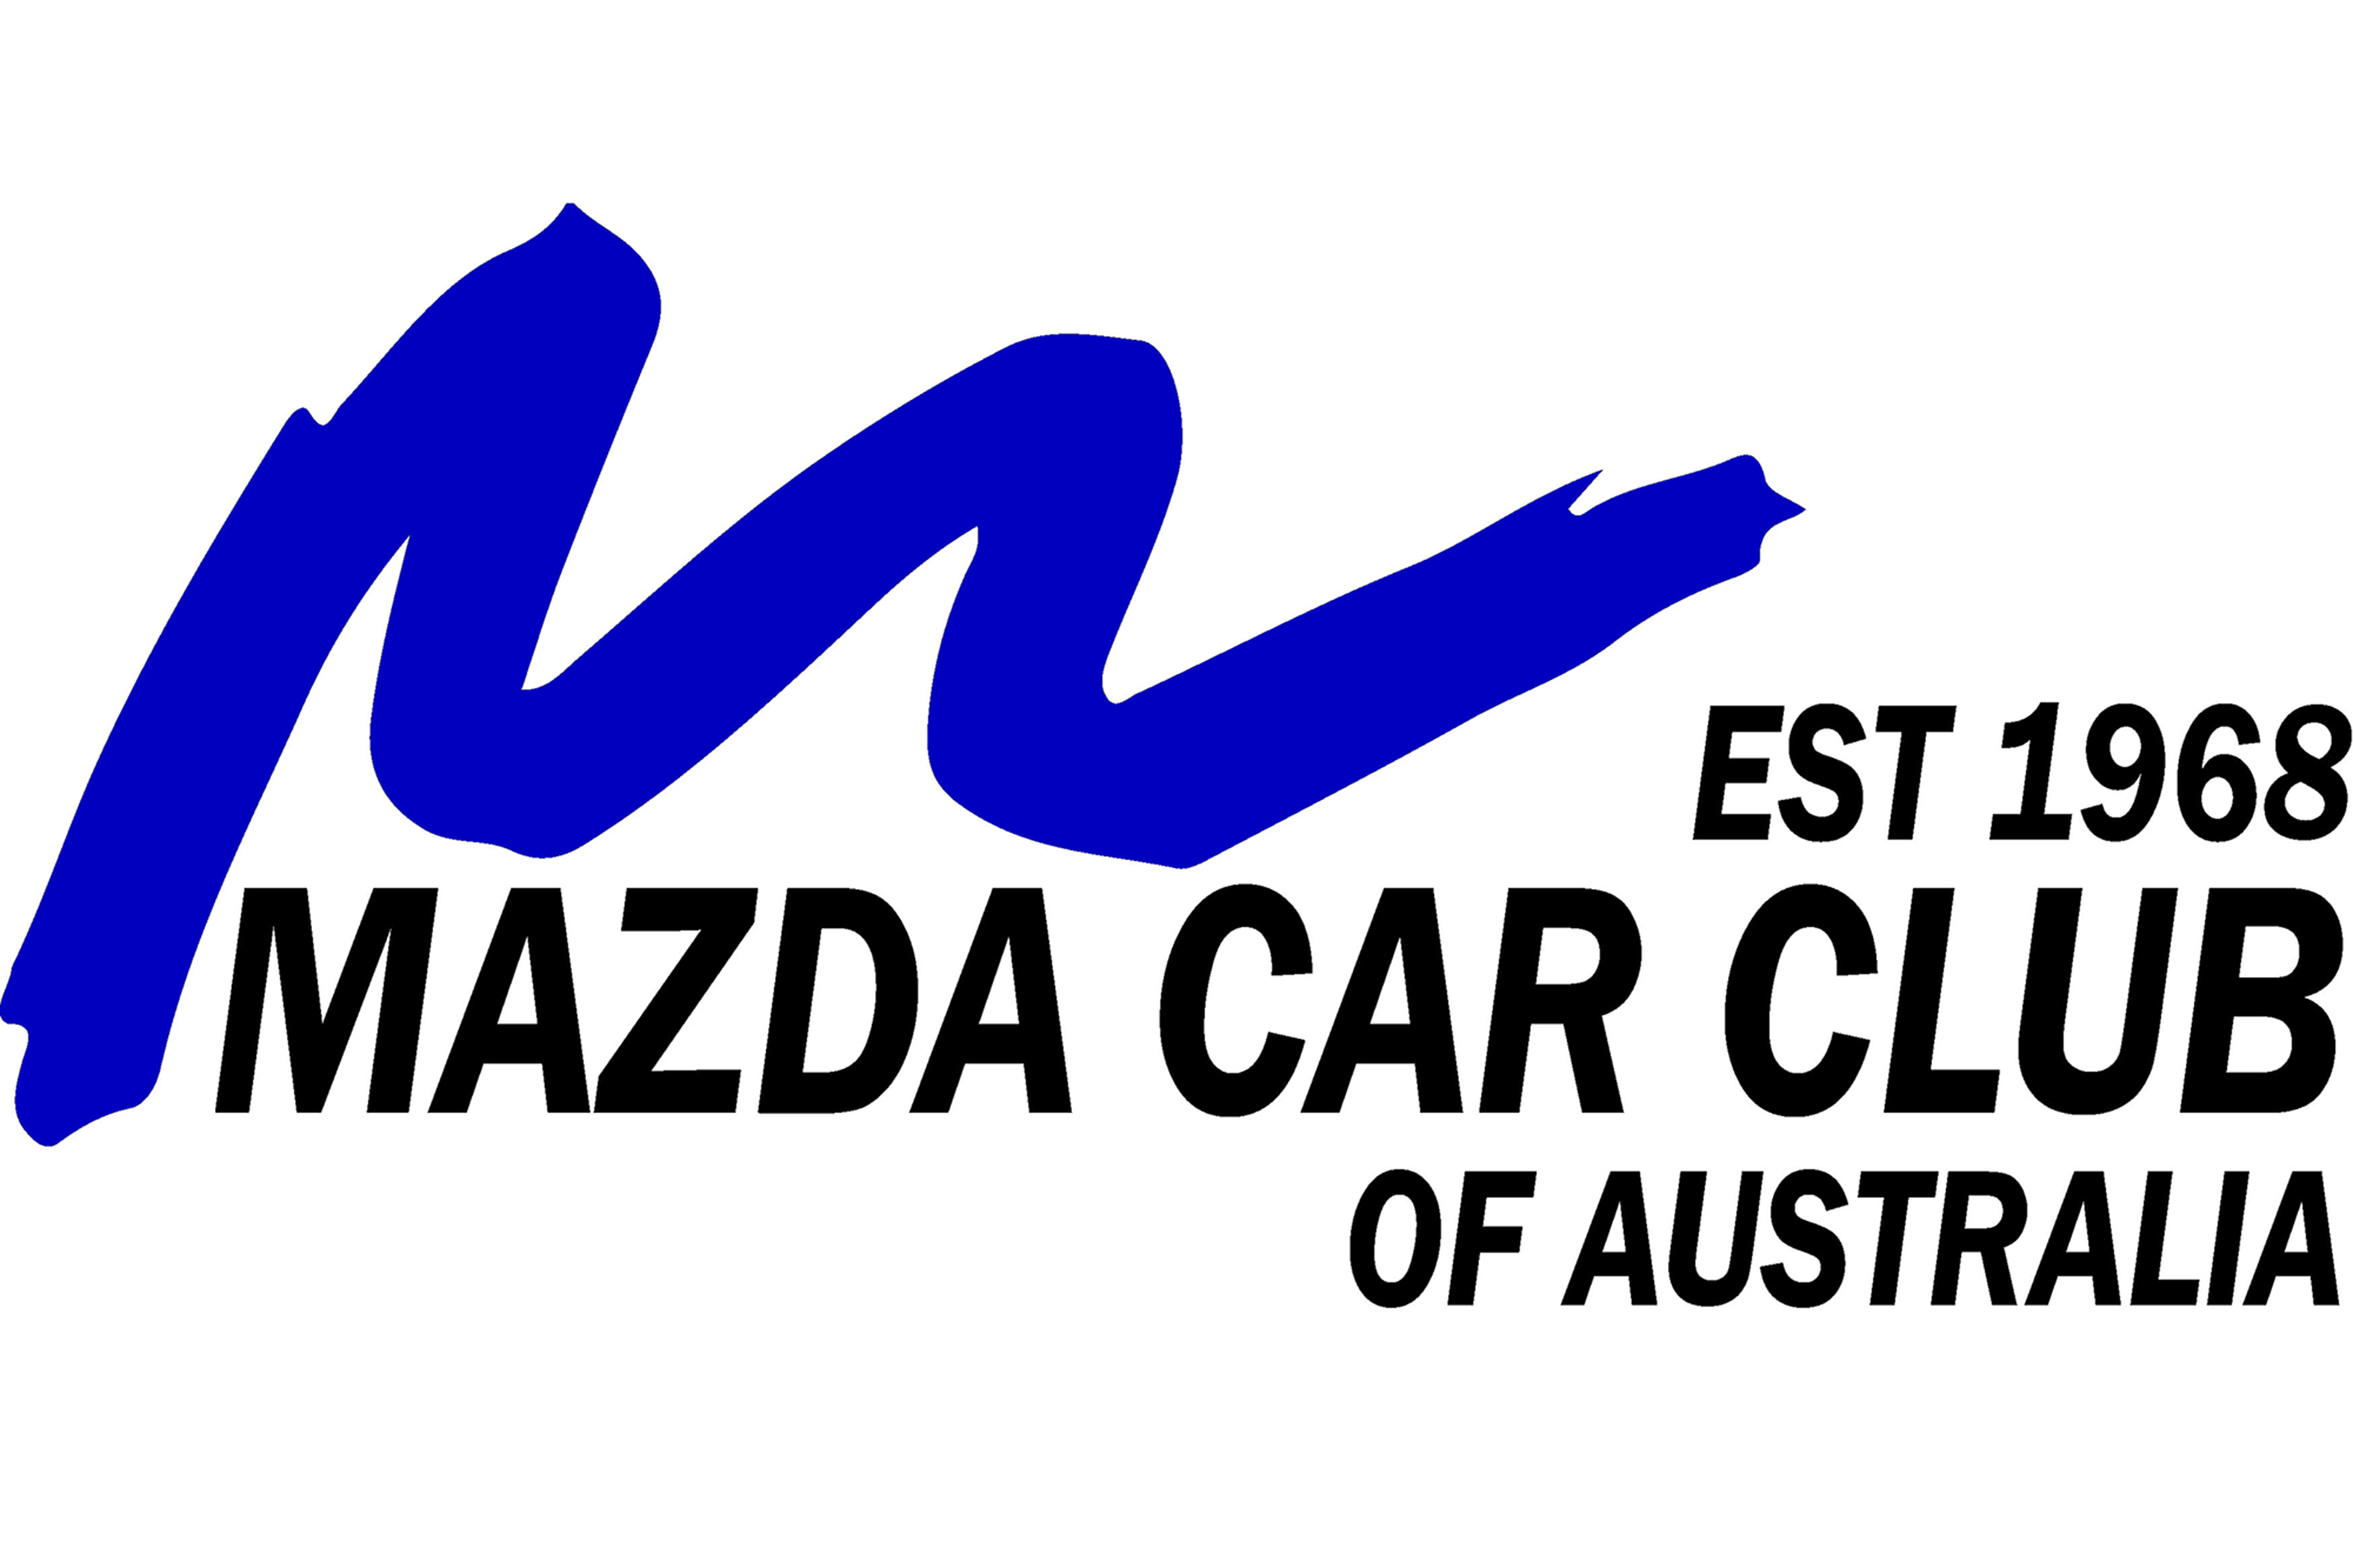 Mazda Car Club of Australia